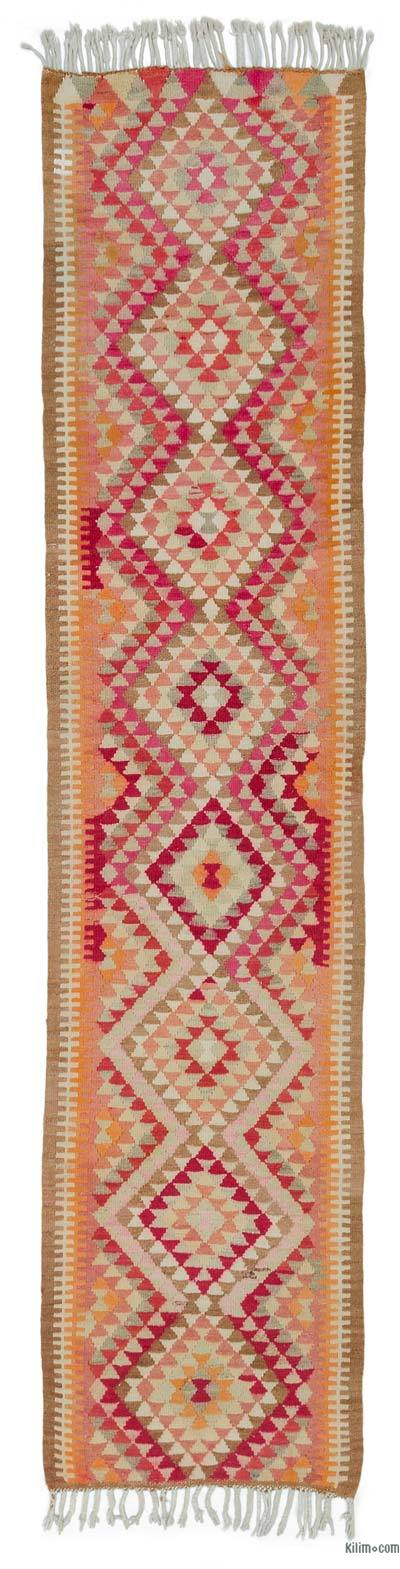 "Vintage Turkish Kilim Runner - 2'11"" x 13' (35 in. x 156 in.)"